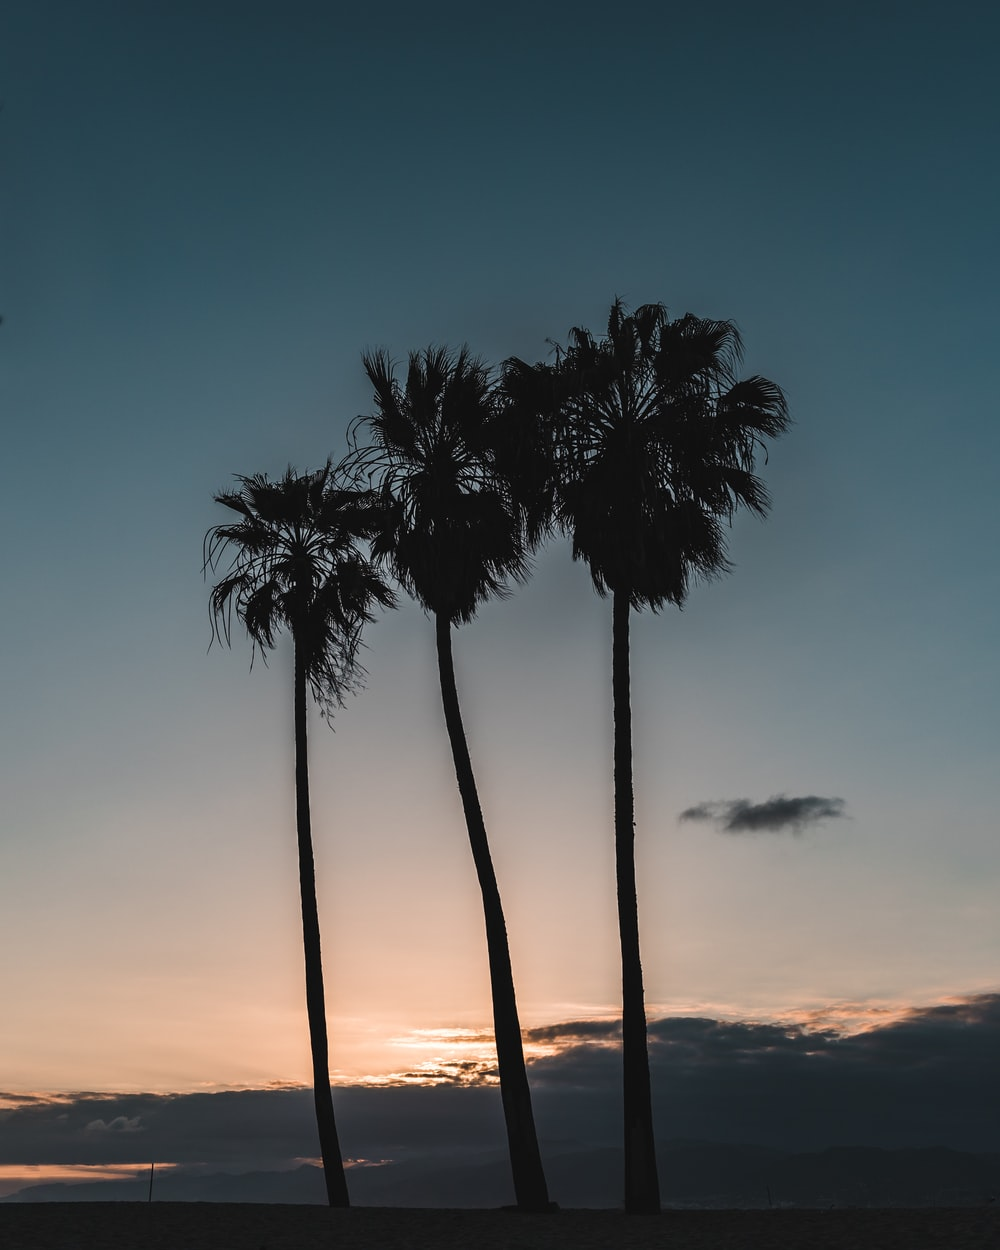 silhouette of three tall palm trees in beach